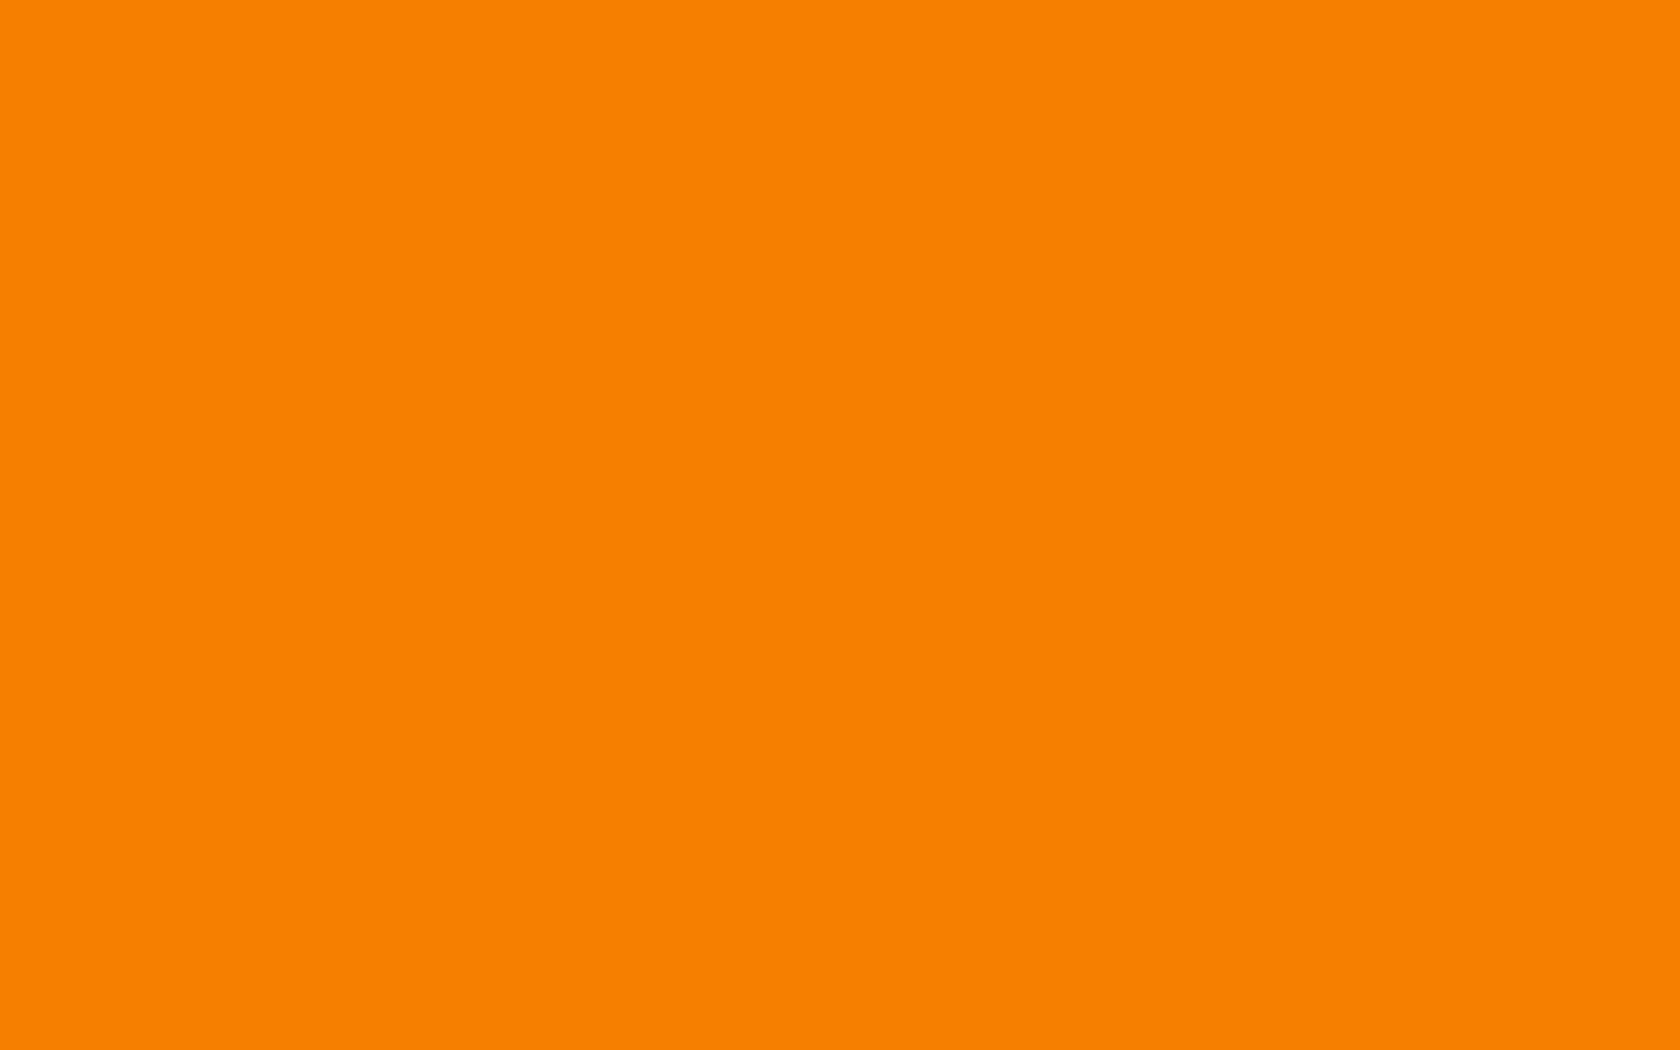 1680x1050 University Of Tennessee Orange Solid Color Background